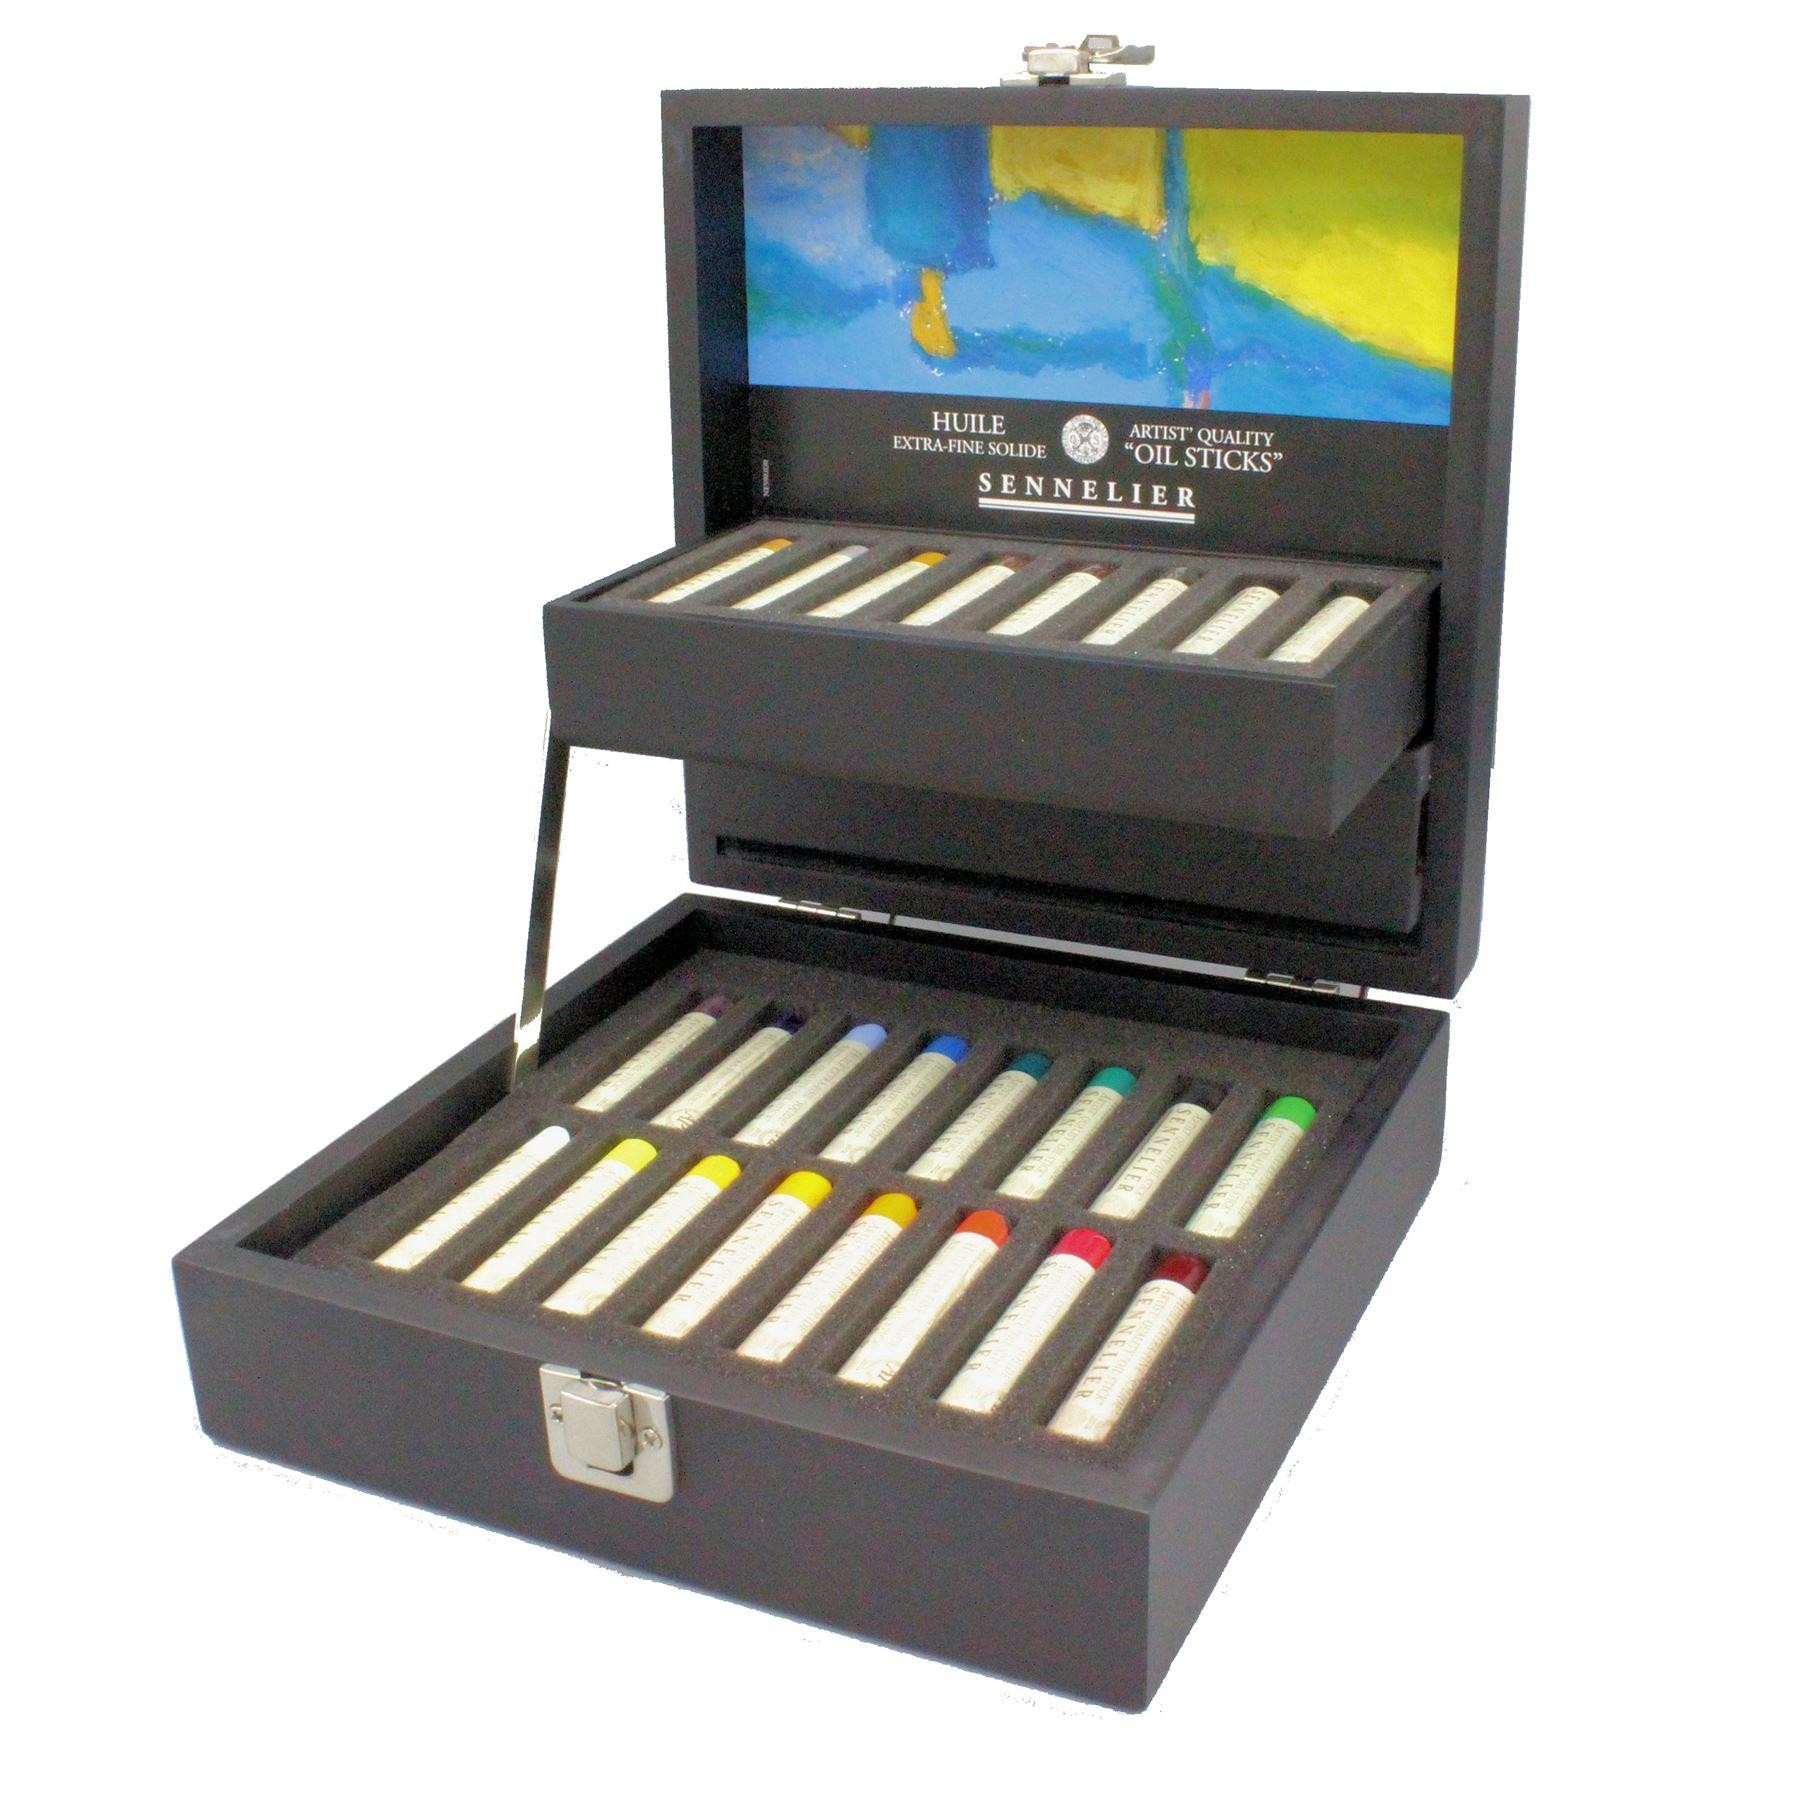 Sennelier oil stick mini wooden box set